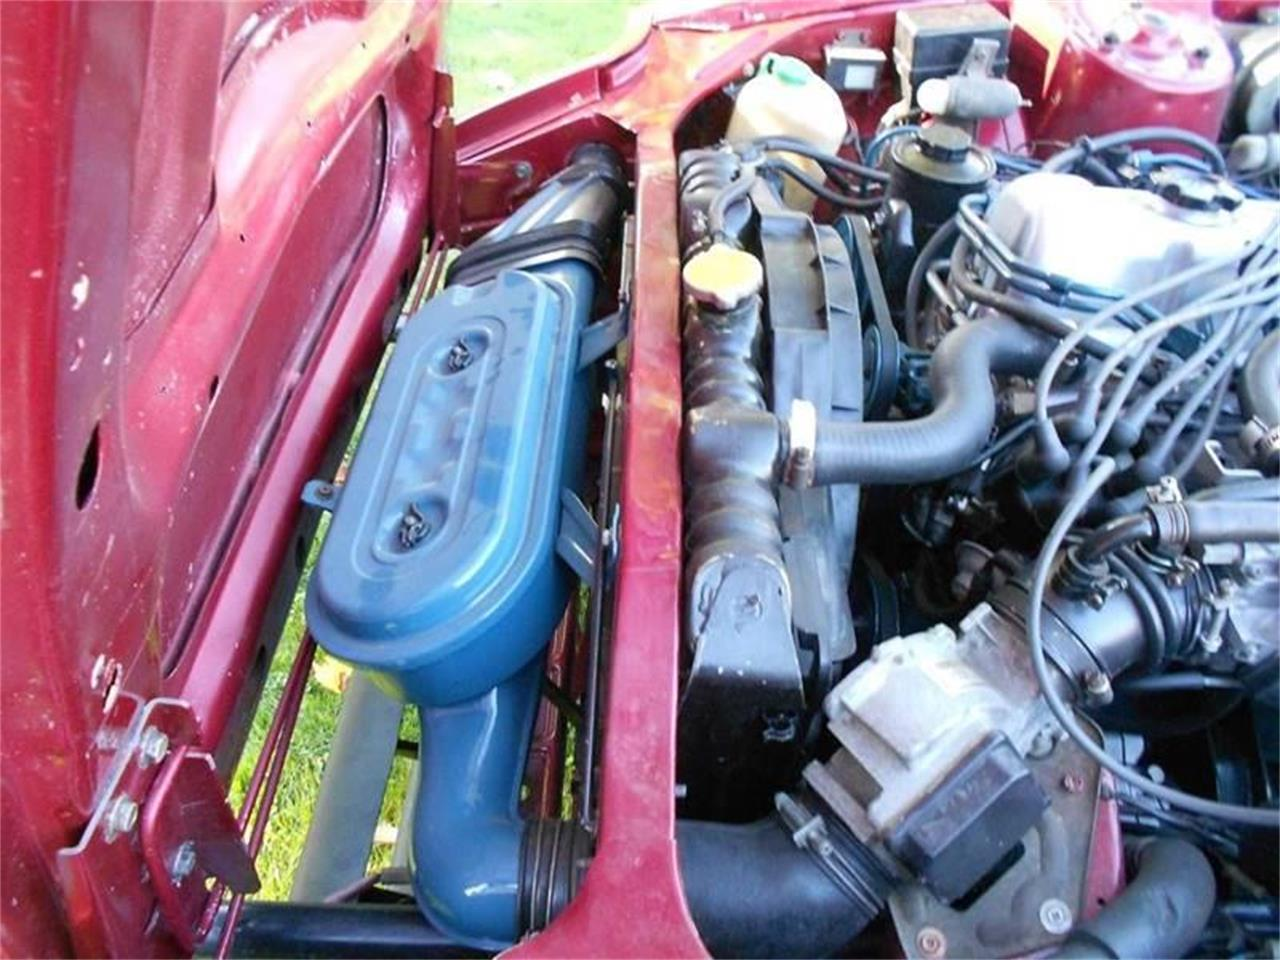 1983 Datsun 280ZX for sale in Long Island, NY – photo 7